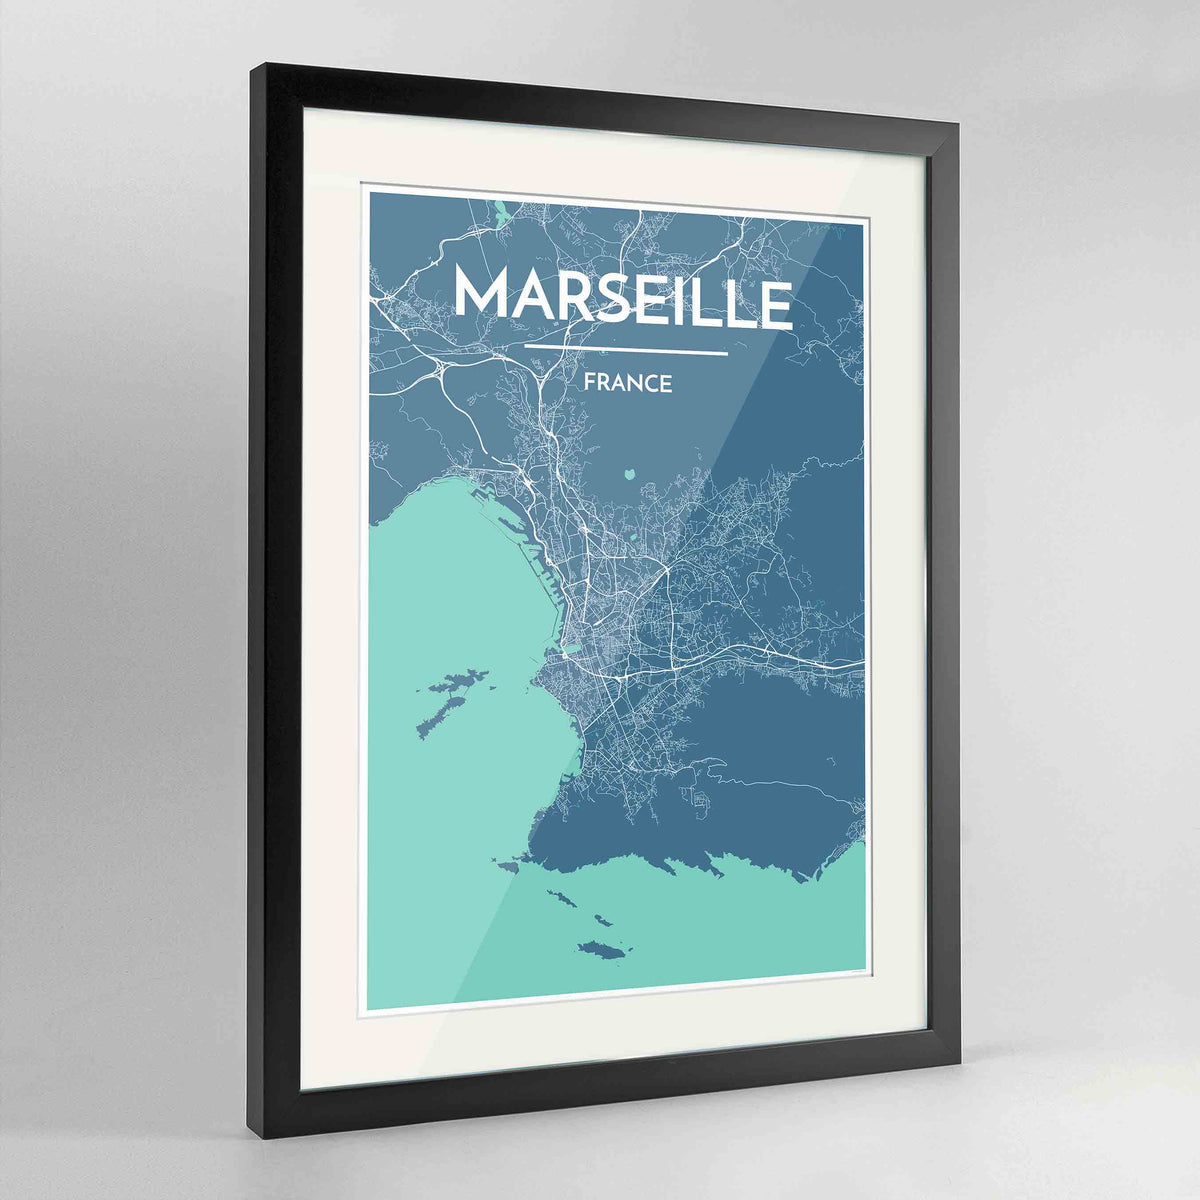 "Framed Marseille Map Art Print 24x36"" Contemporary Black frame Point Two Design Group"